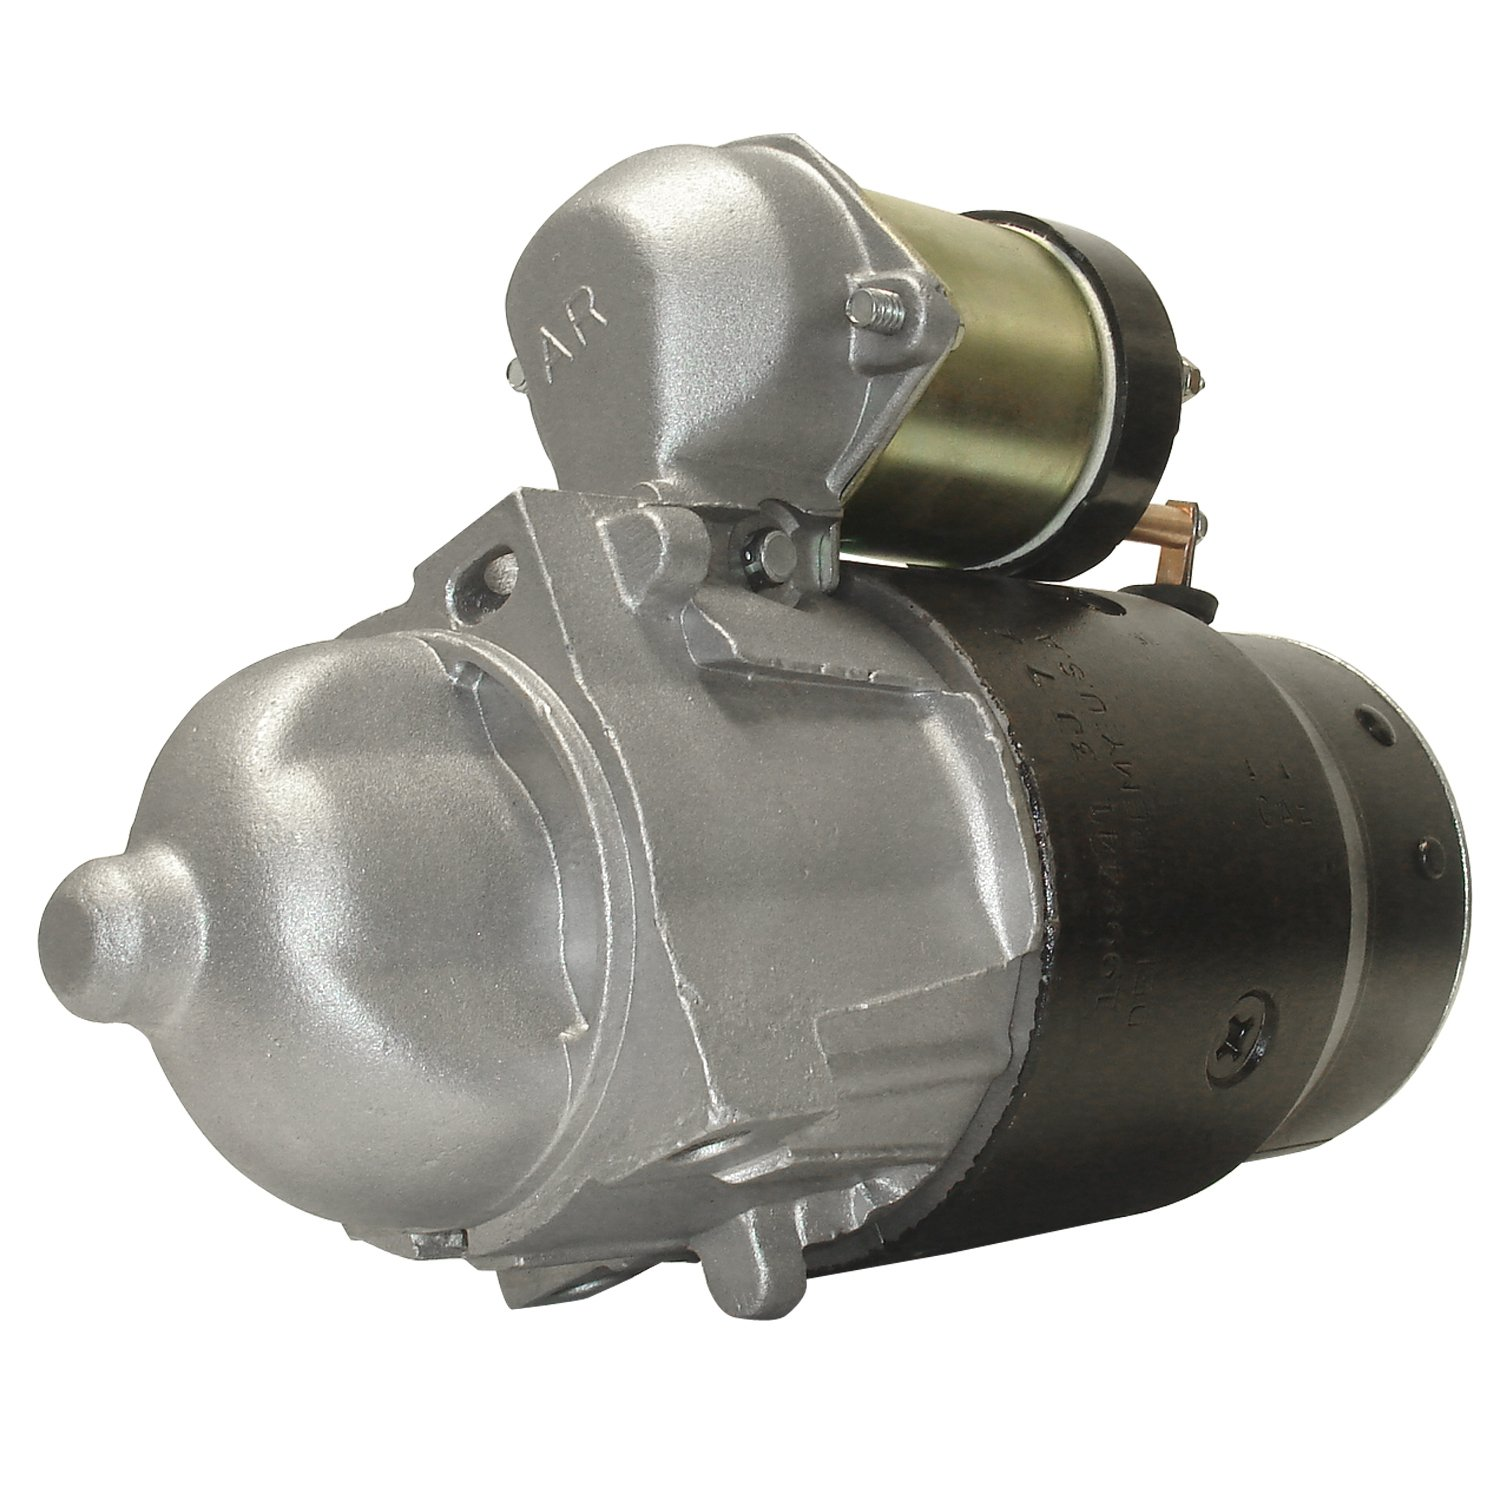 ACDelco 336-1823A Professional Starter, Remanufactured 336-1823A-ACD